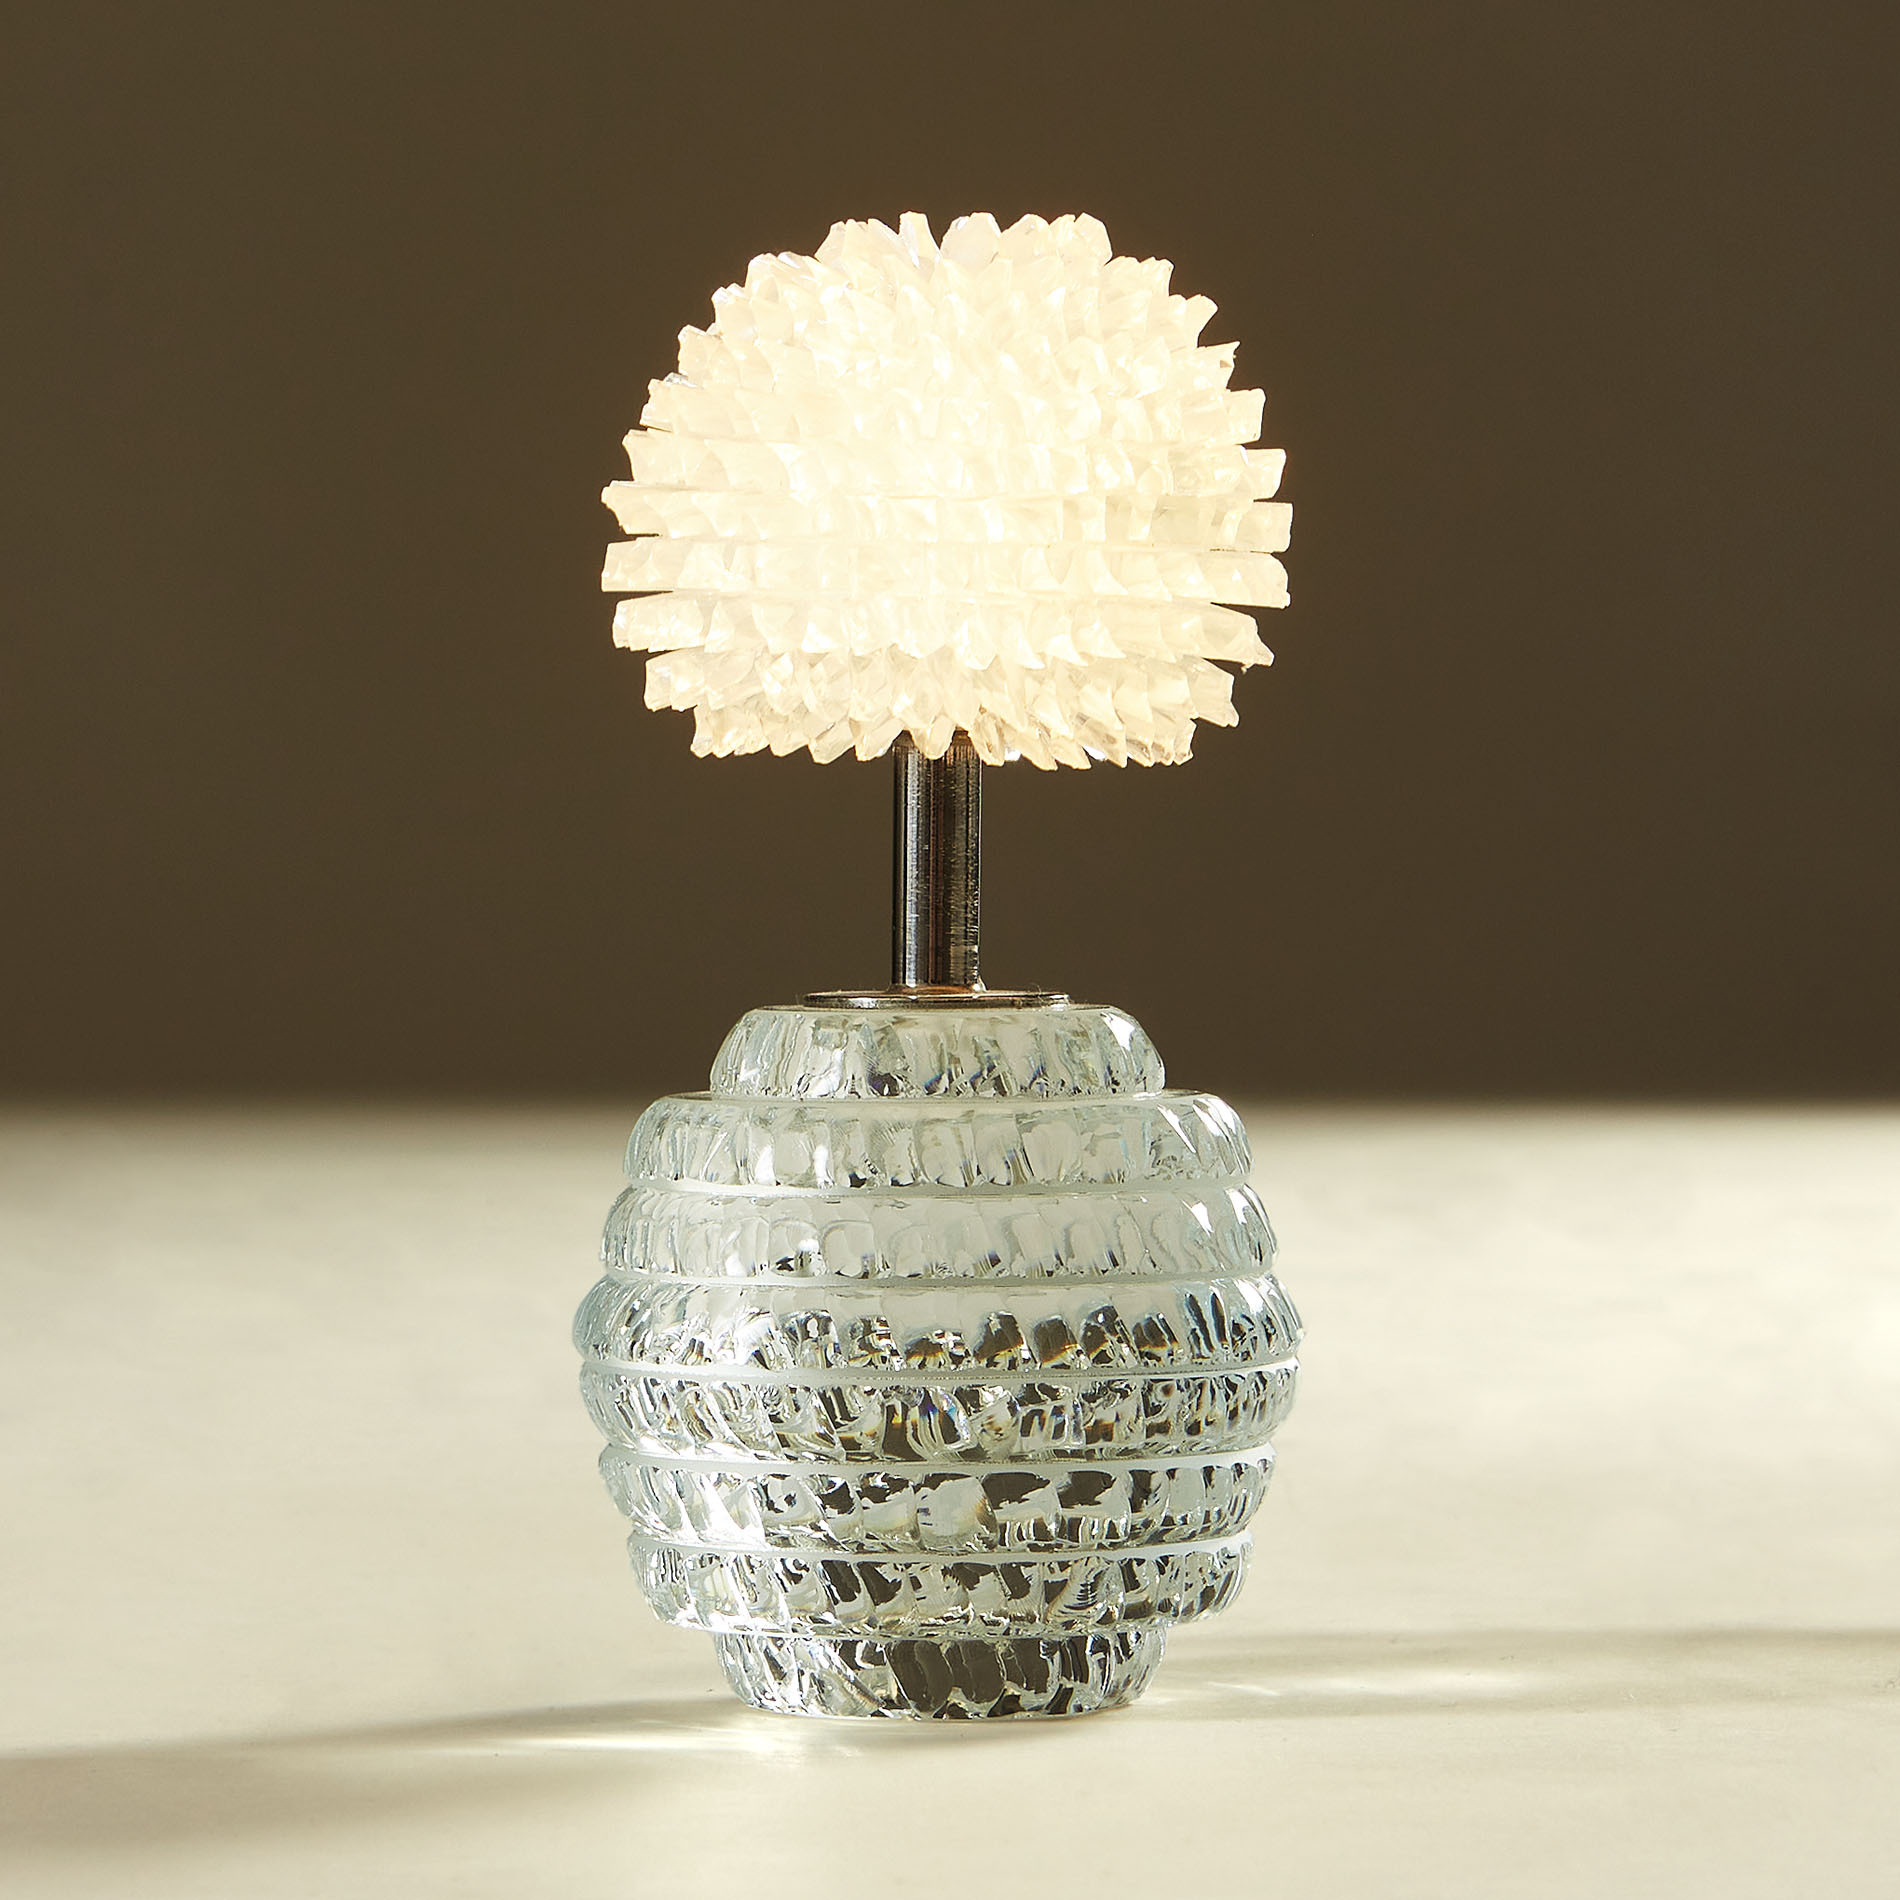 The image for Dandelion Lamps 20210225 Valerie Wade 3 089 V1